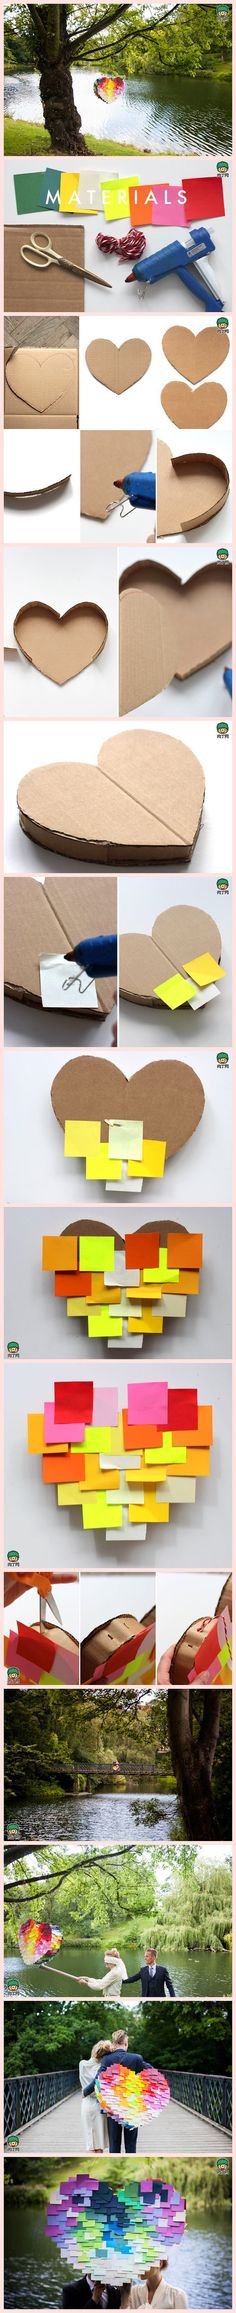 DIY Heart Pinata - Materials: Cardboard, Colorful Square Paper (like Sticky Note Pads), Glue Gun